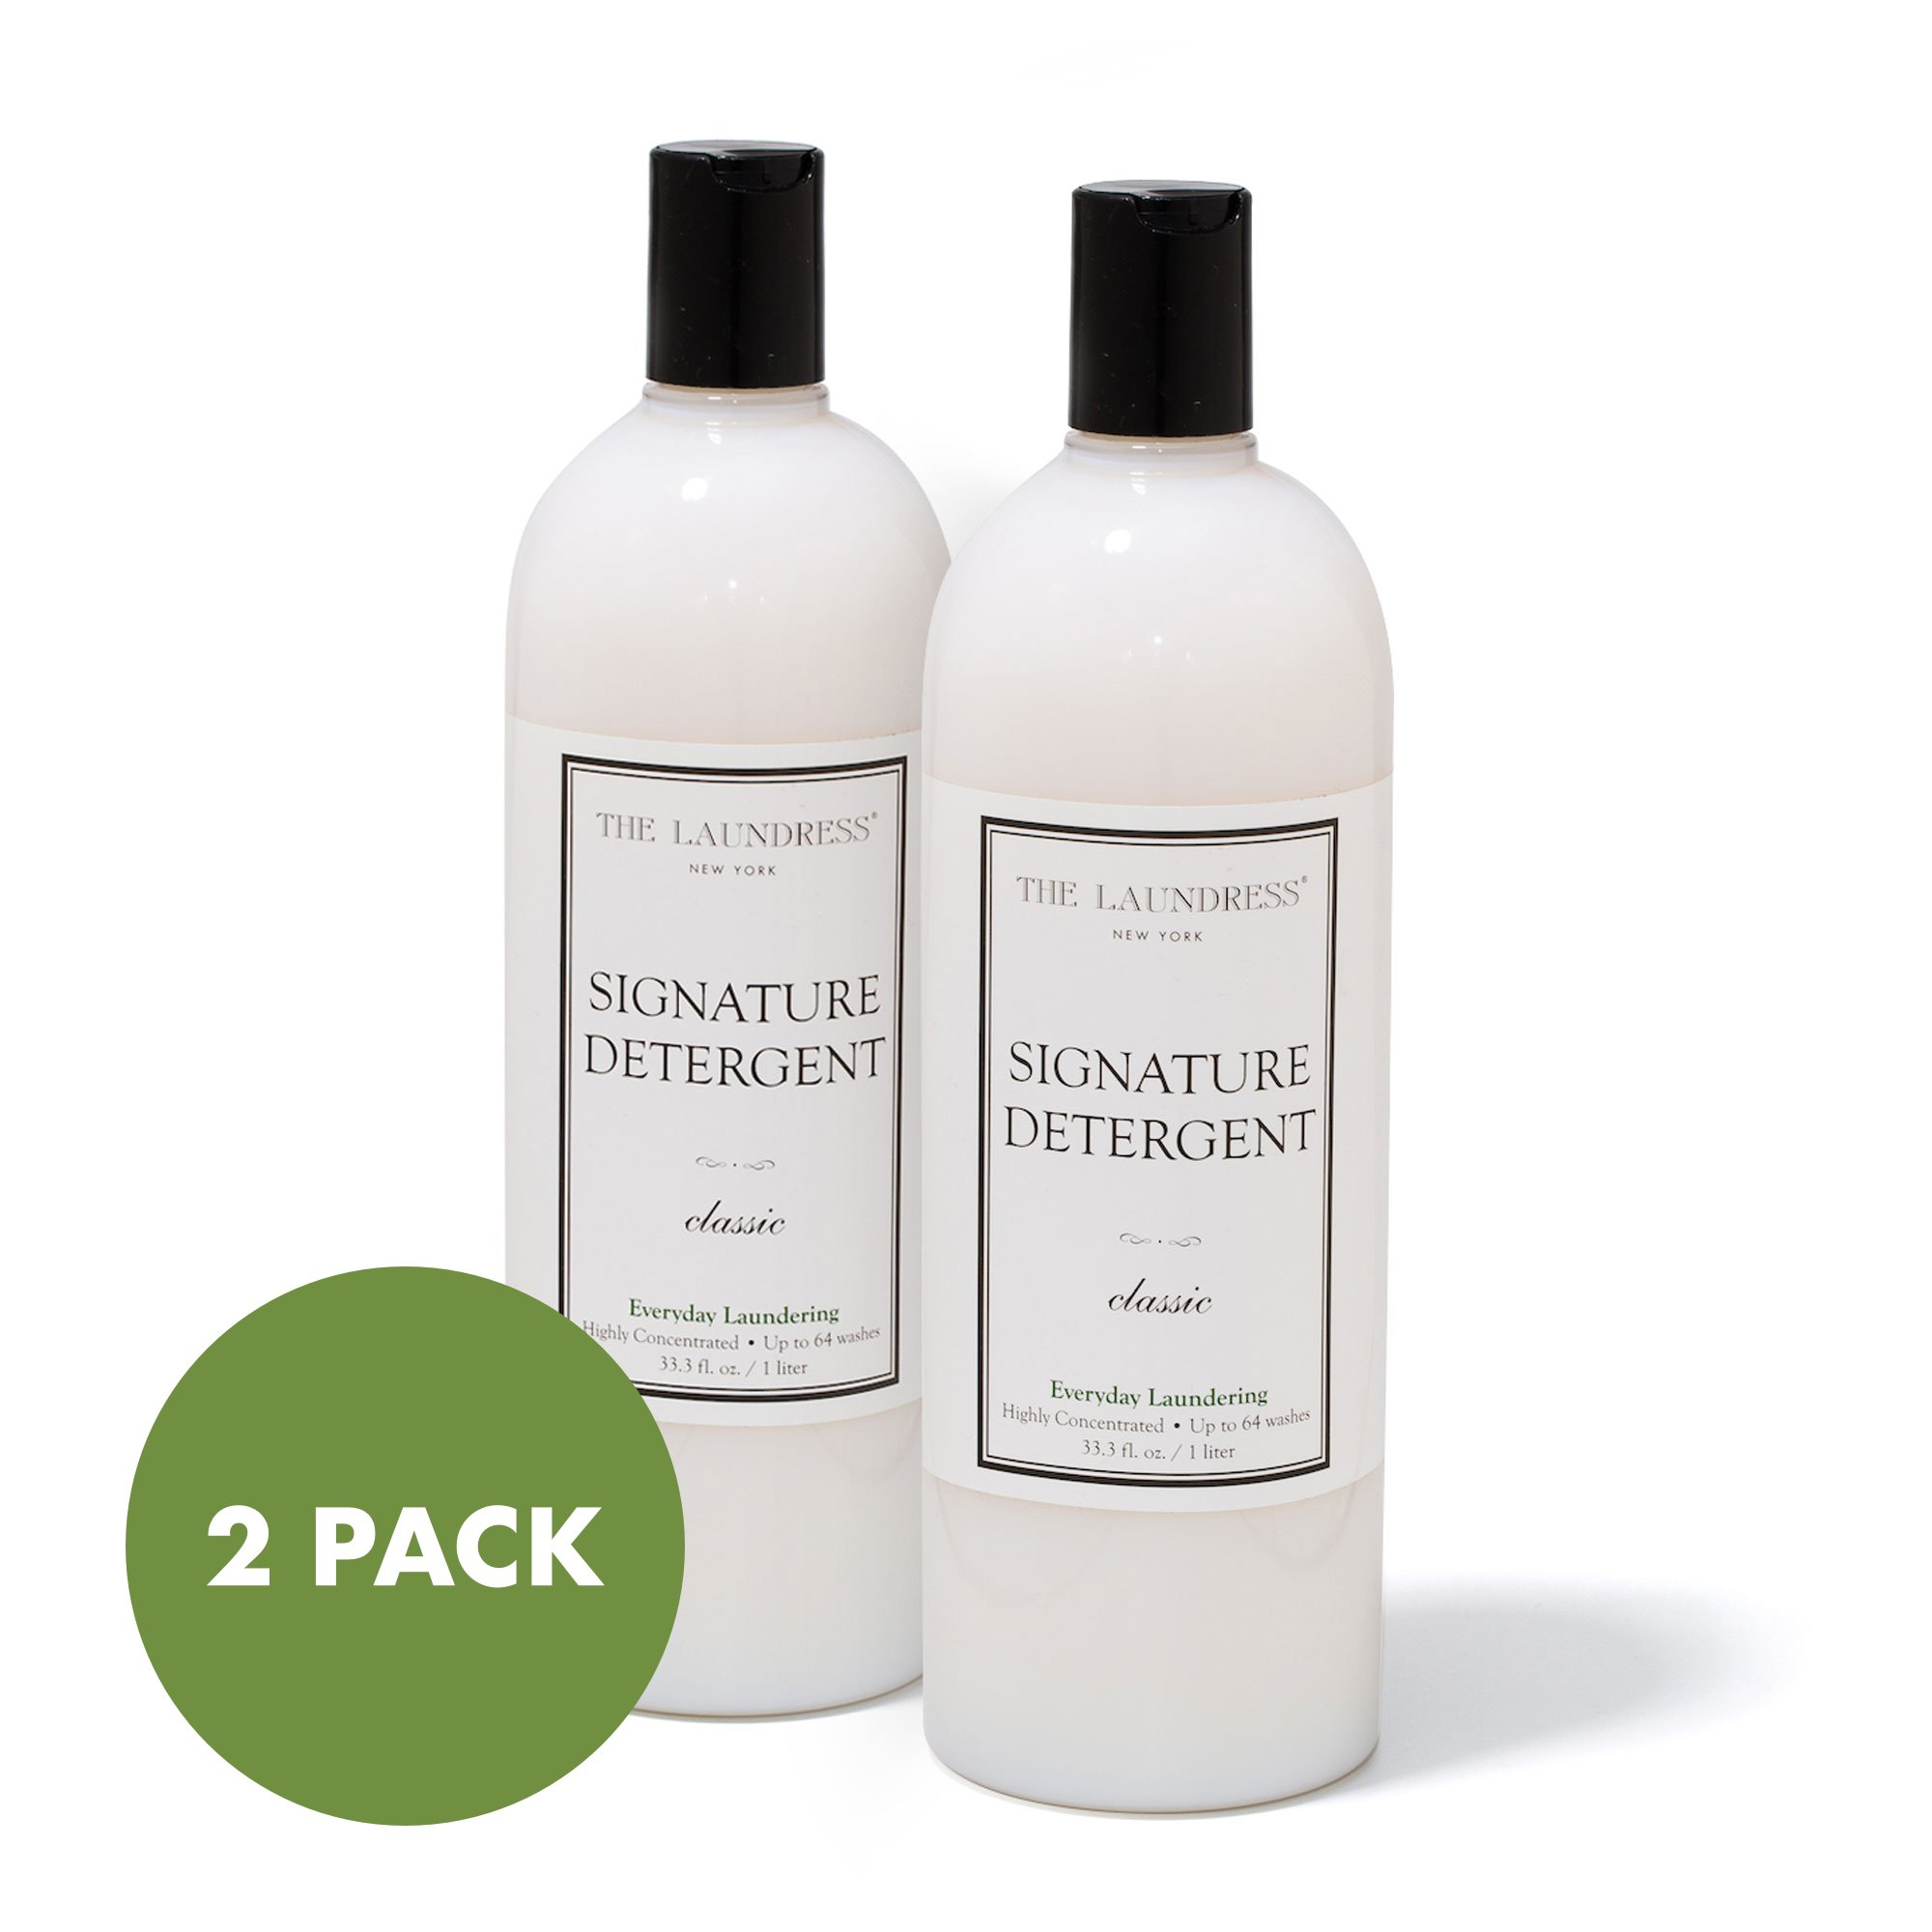 The Laundress Signature Detergent - 33.3 oz, Classic Scent, 2 Pack - All Natural, Plant Based, Eco-Friendly, Biodegradable & Hypoallergenic - Amazing Scent with Jasmine & Citrus Overtones - 128 loads by The Laundress